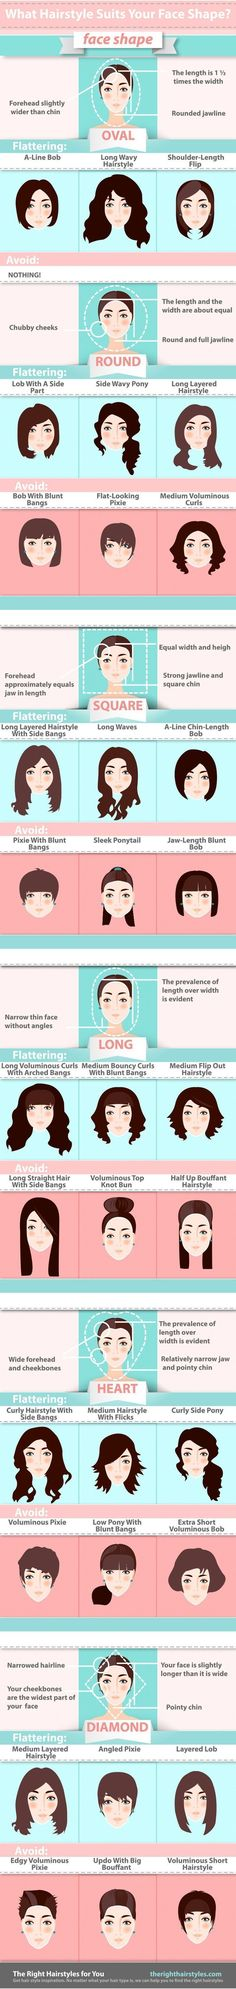 DIY Makeup Tutorials : Guide: The Perfect Hairstyle For Your Face Shape   Best Beauty Tips And Fashion ... https://diypick.com/beauty/diy-makeup/diy-makeup-tutorials-guide-the-perfect-hairstyle-for-your-face-shape-best-beauty-tips-and-fashion-3/ Life is too short to settle for the same sleep-inducing nude makeup look over and over again. You have earned the right to go bold and bright. Deck of Scarlet partners with the best Youtube artists to create a stunning limited edition palette every…